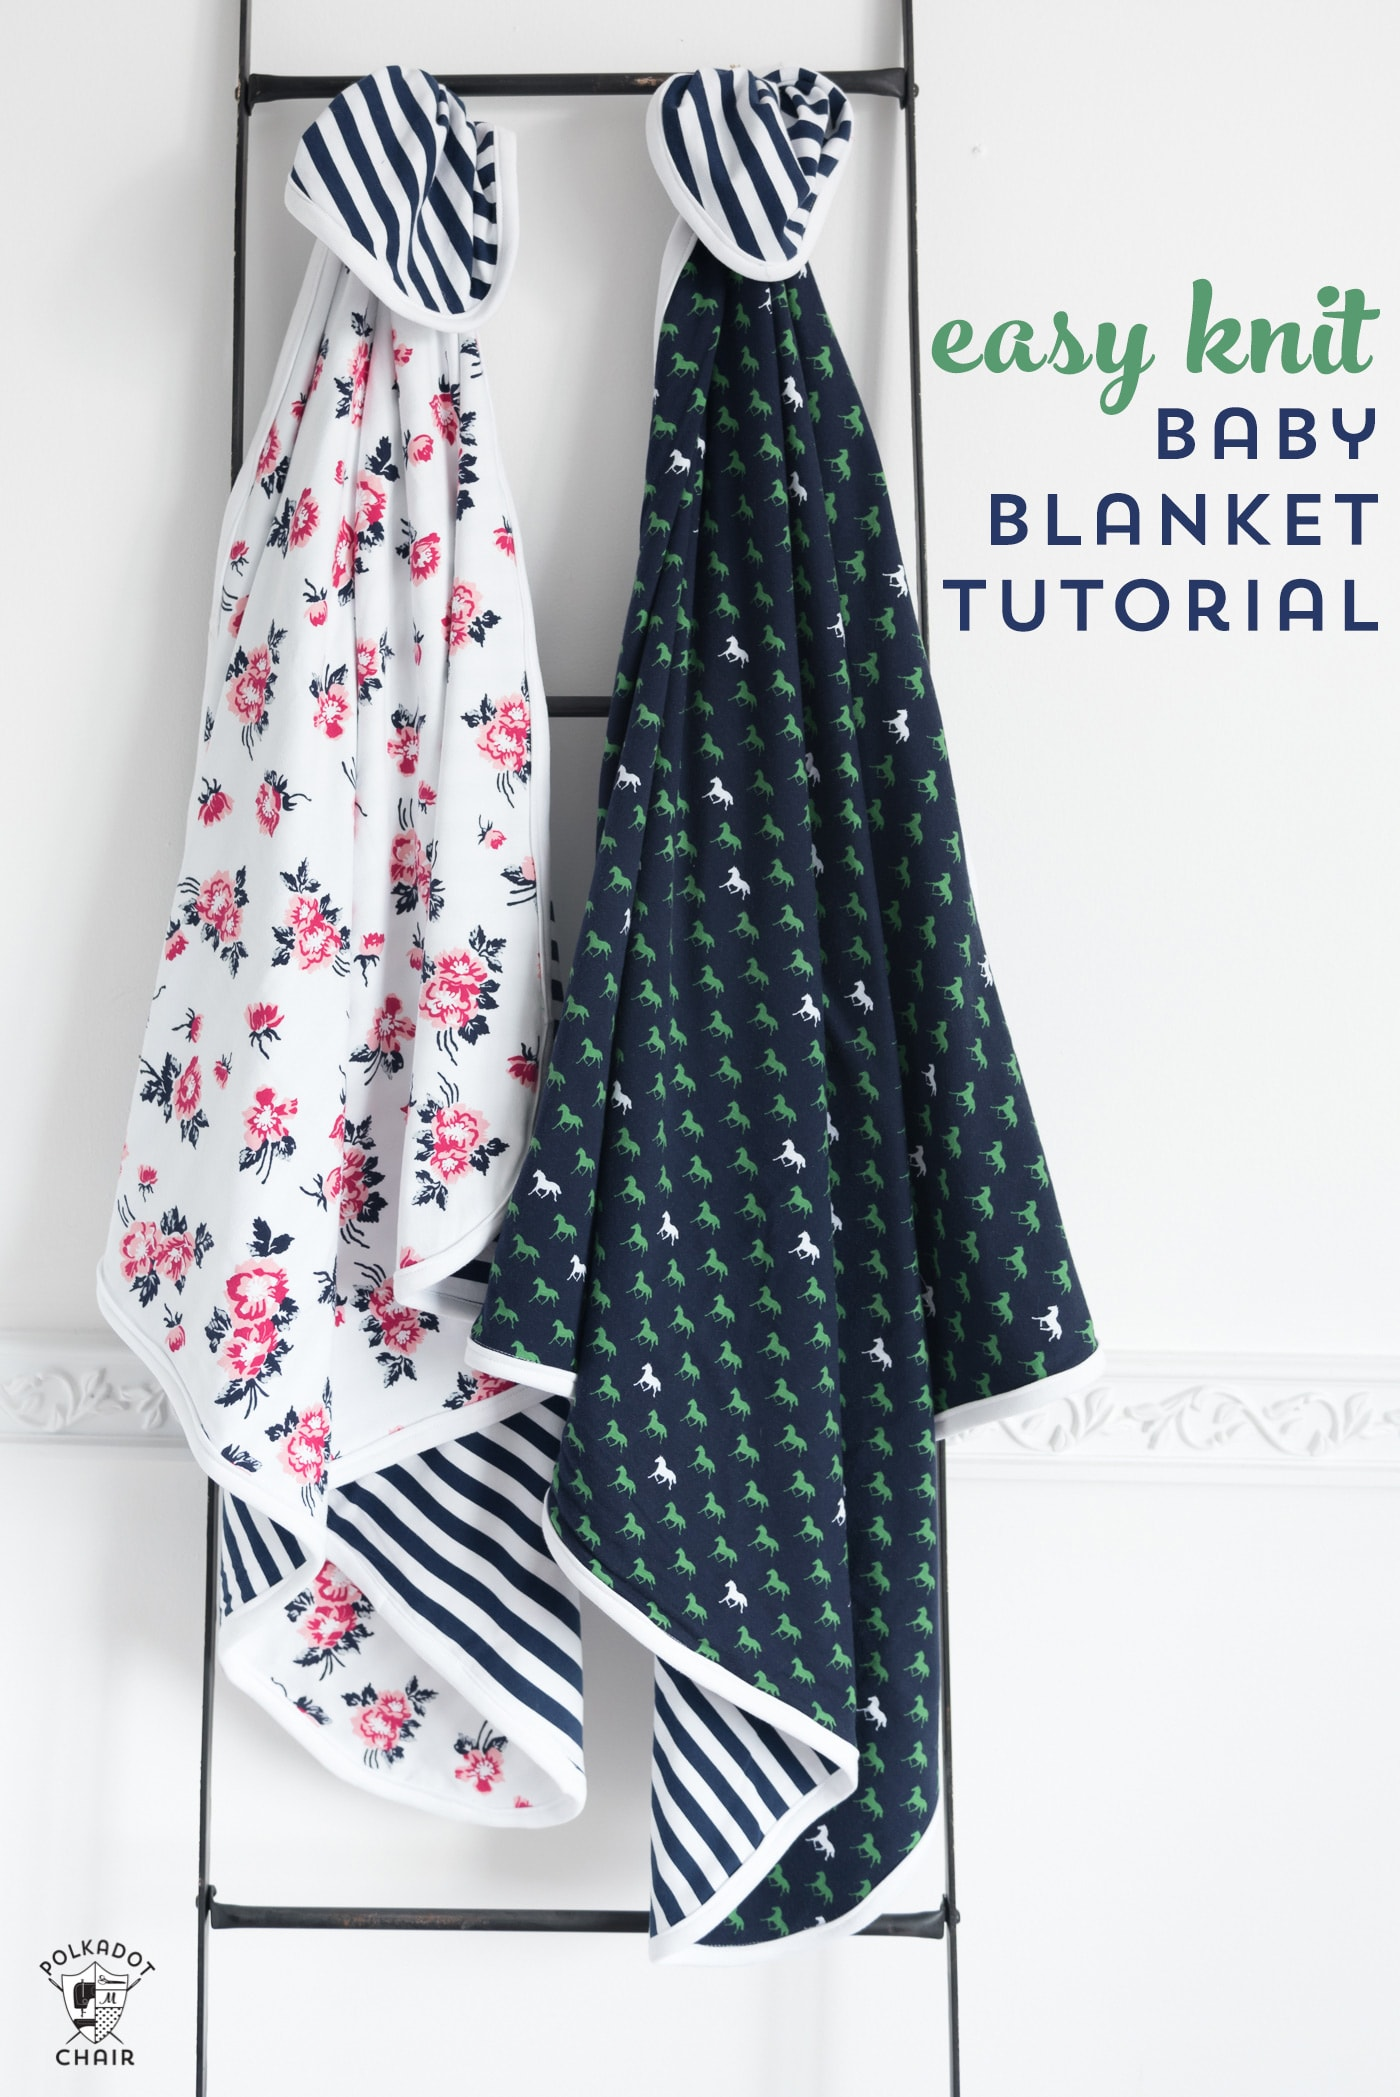 Easy Baby Blanket Patterns - How to Make Baby Blankets with Knit Fabrics